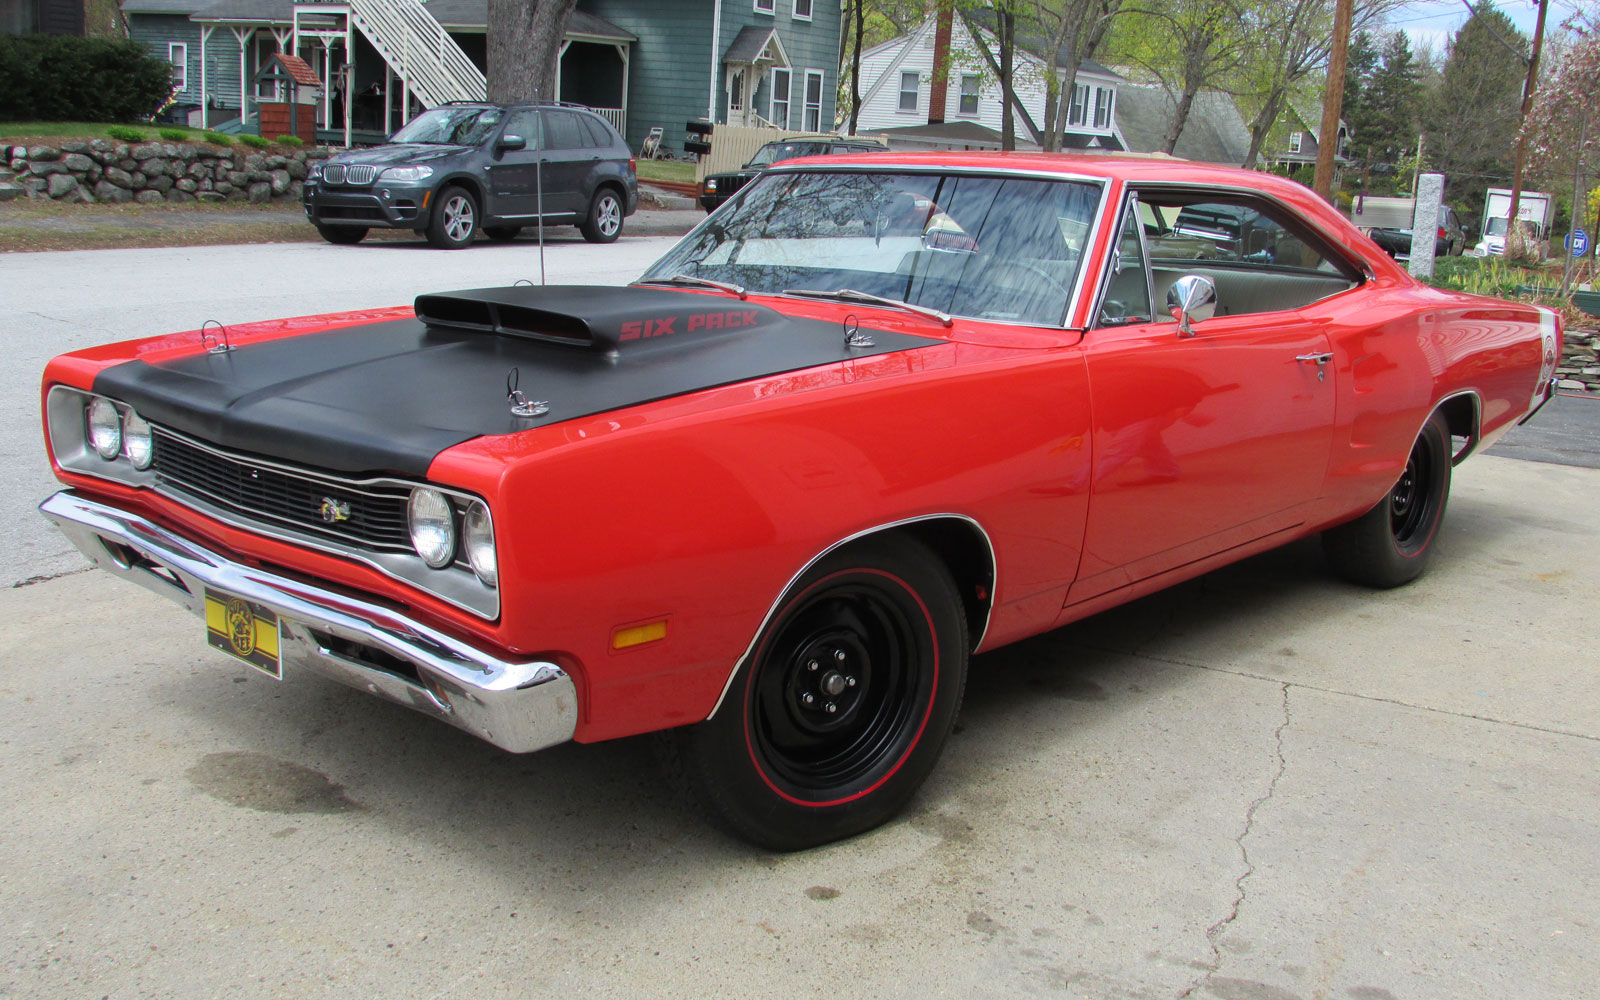 1969 1/2 Dodge Super Bee A12 - My Dream Car